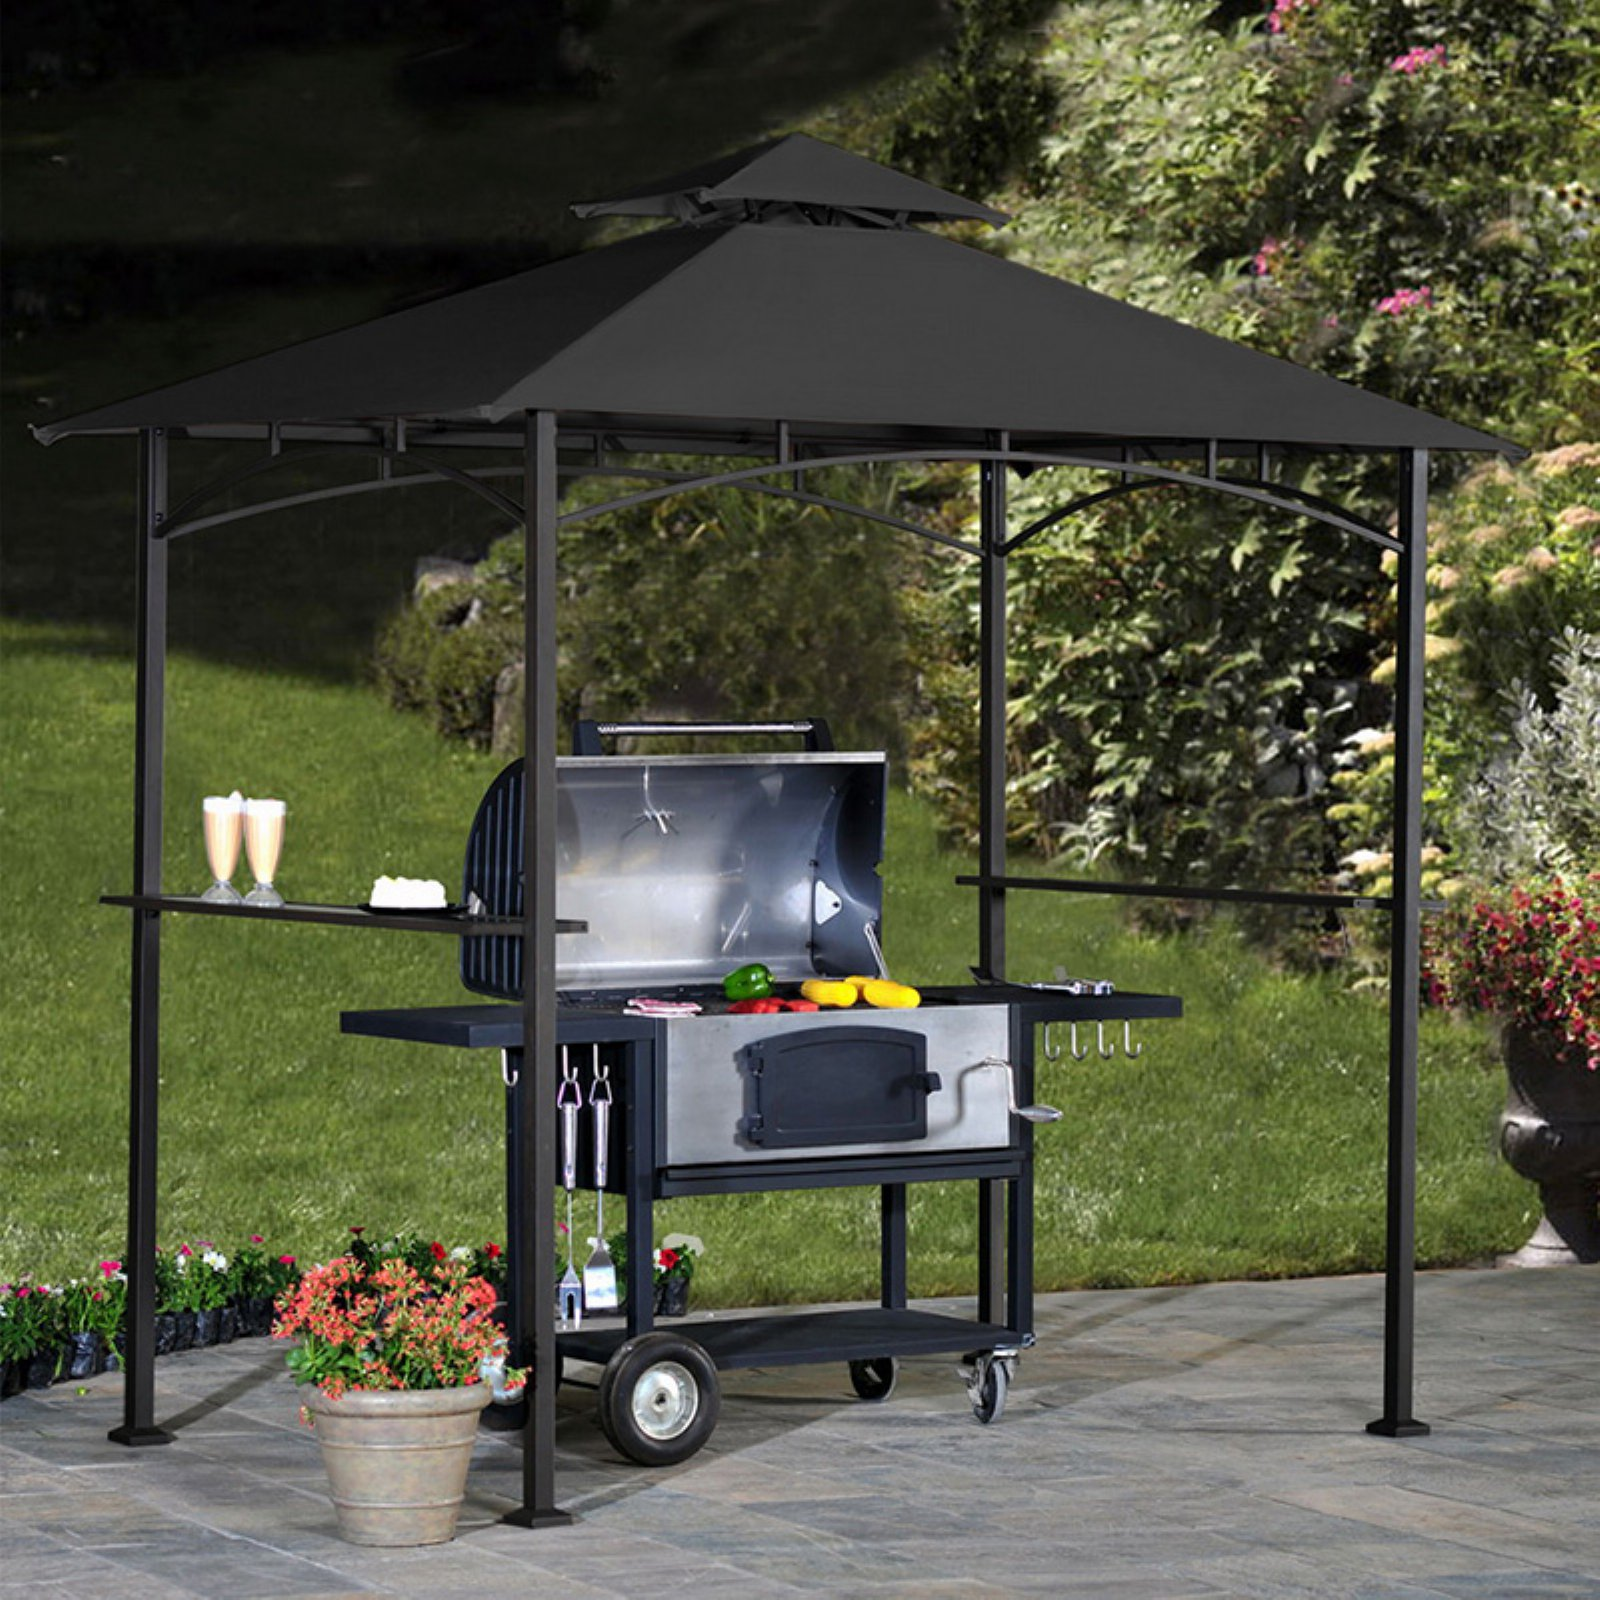 Sunjoy Replacement Canopy Set for L-GZ238PST-11C1 Grill Gazebo